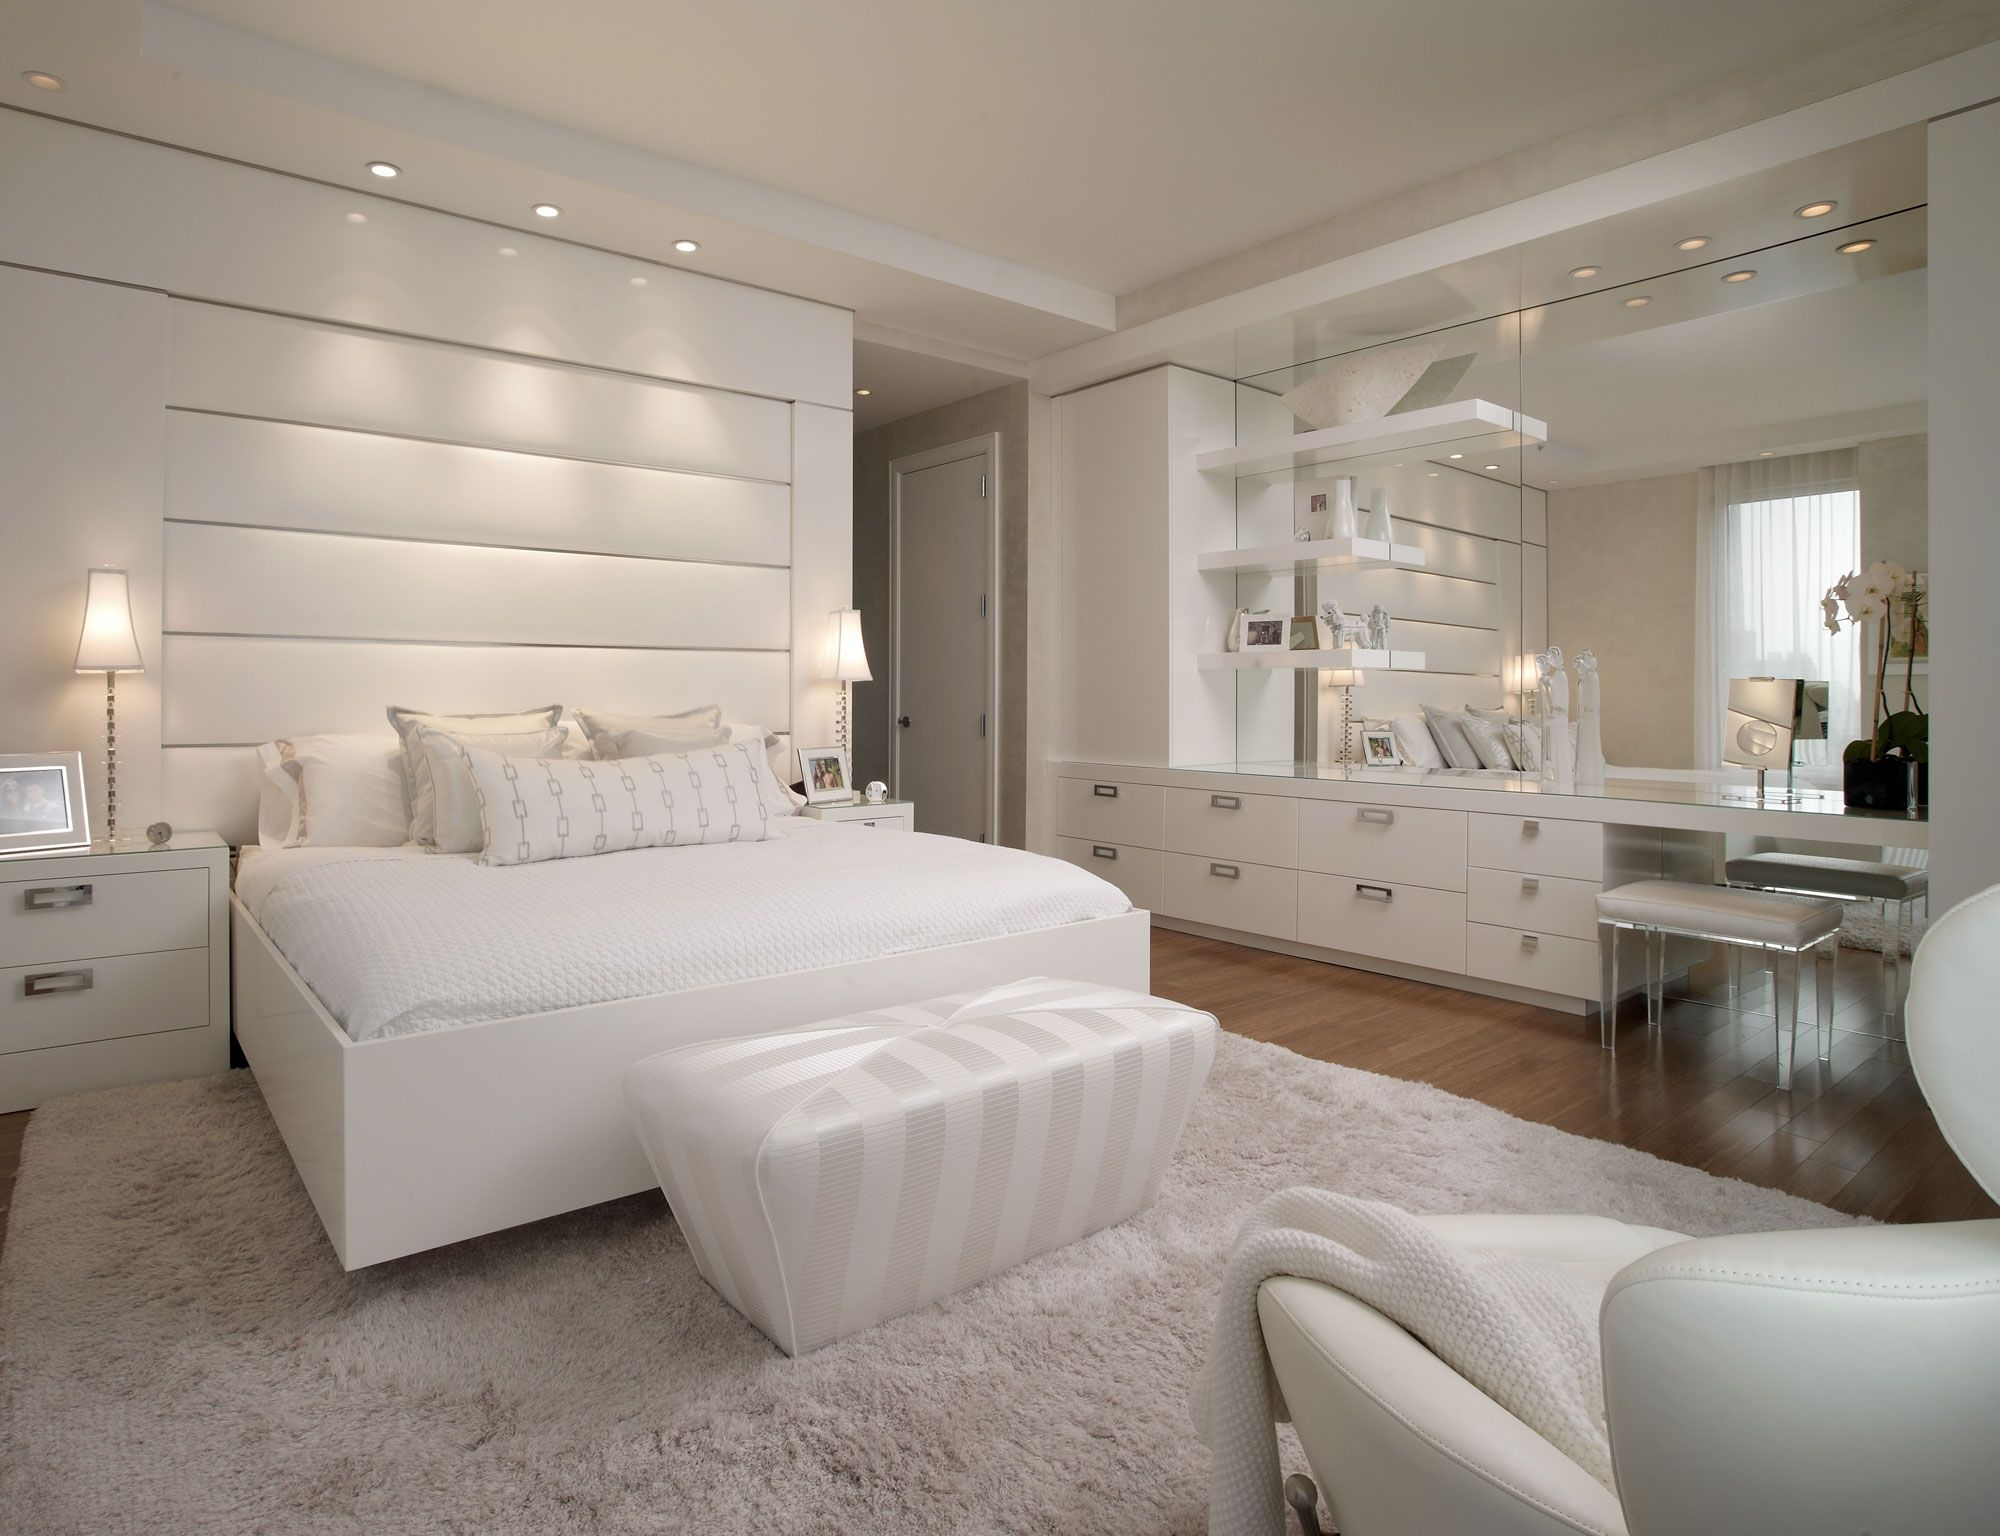 50 Cute Teenage Girl Bedroom Ideas | Bedrooms, Art deco bedroom and ...